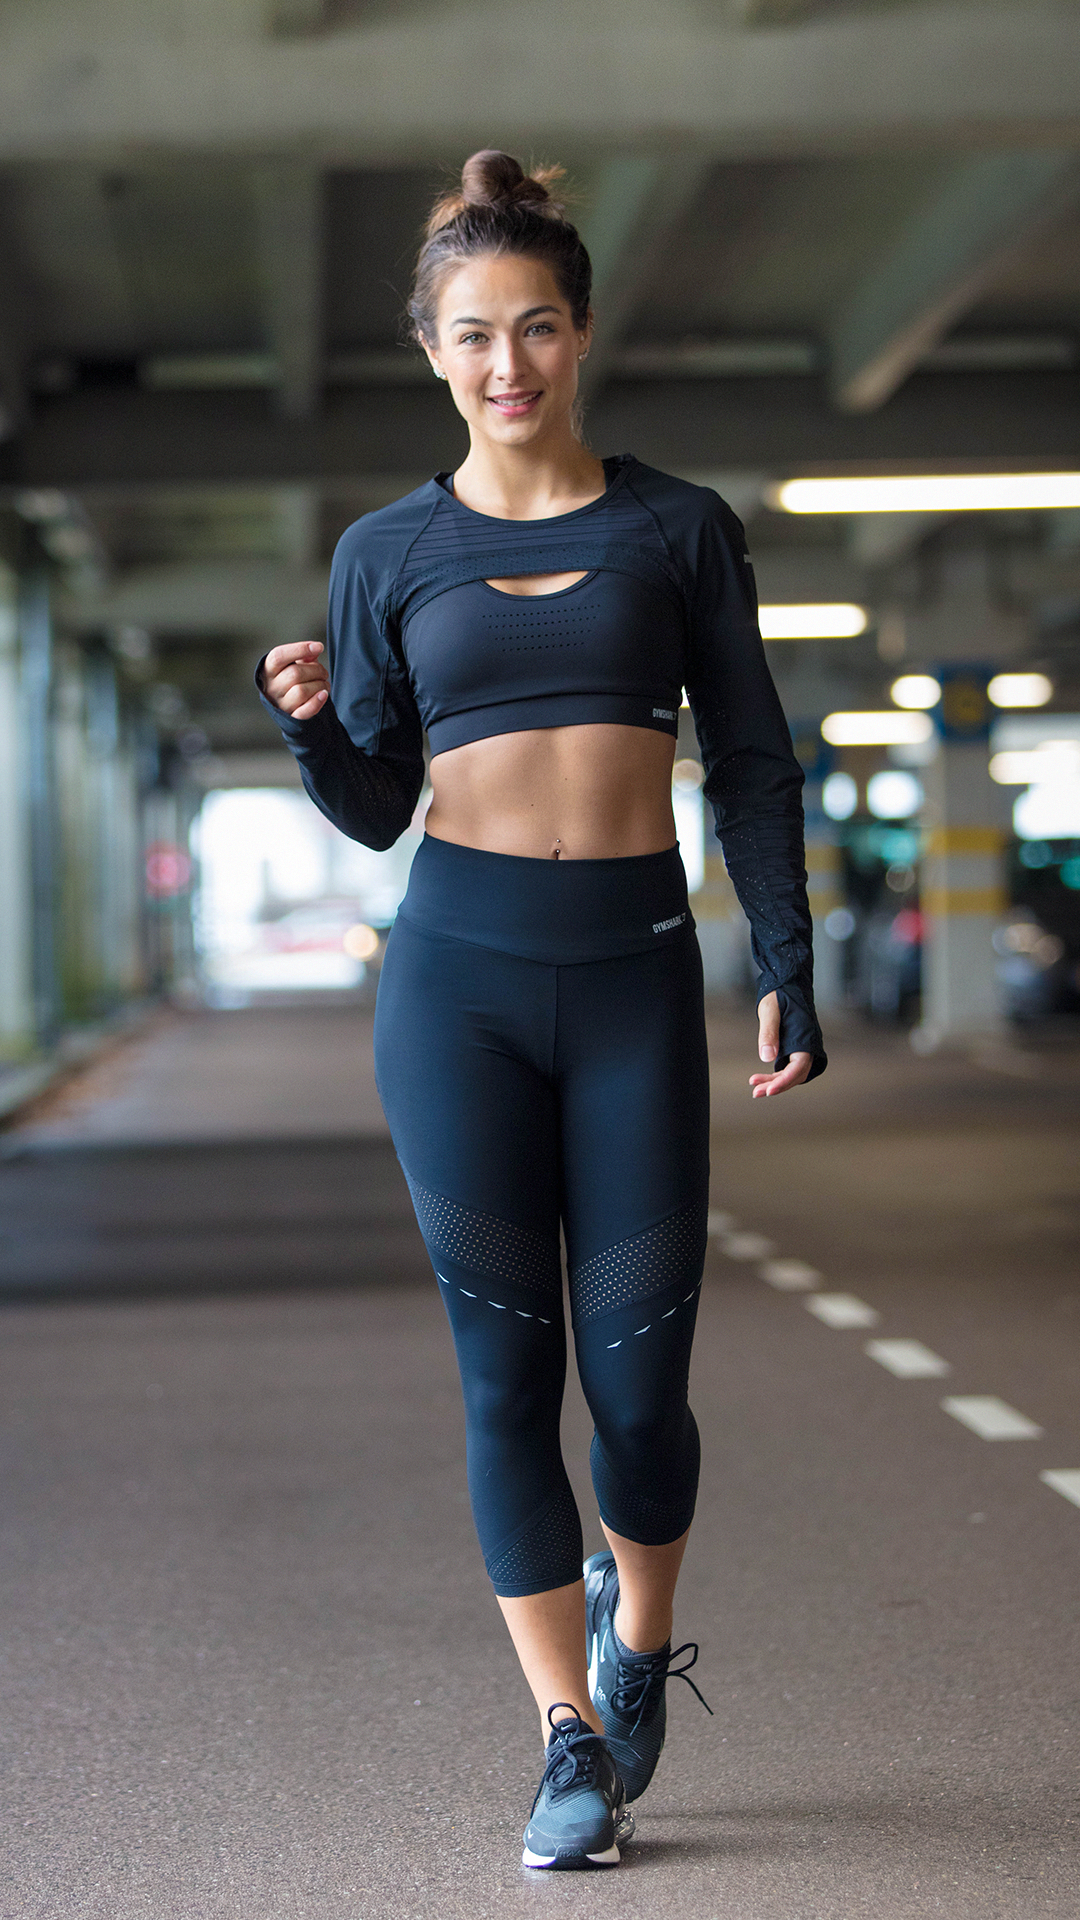 A professional style for your most polished workouts. Style the Pro Perform Shrug, Sports Bra and Le...